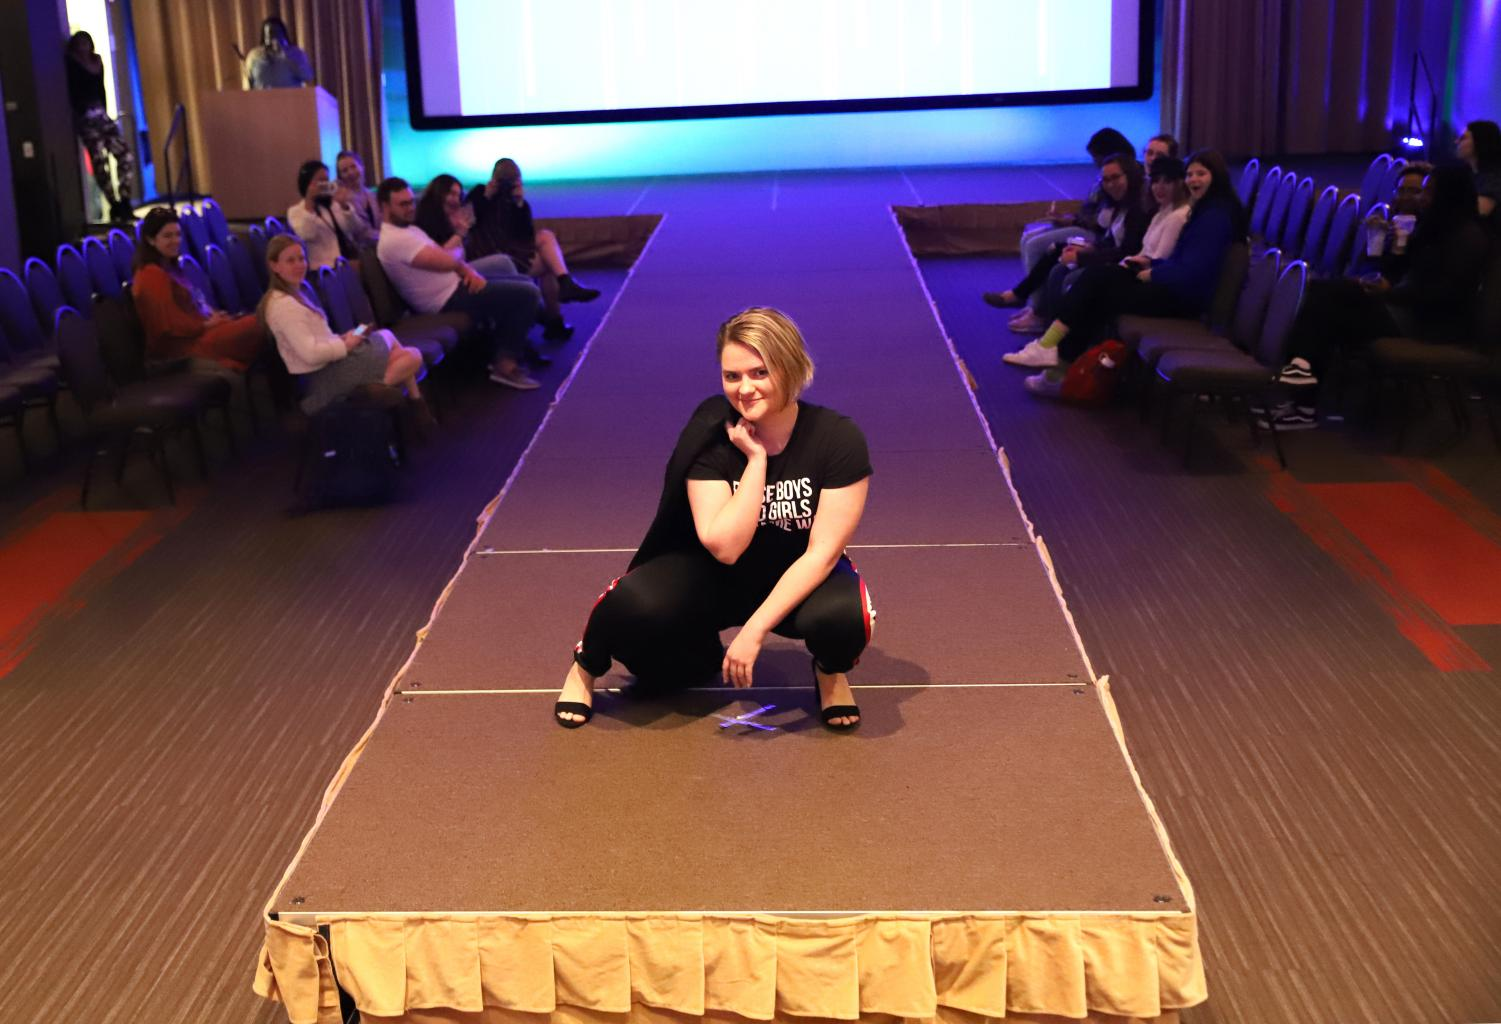 A volunteer from the crowd poses during the DePaul Fashion Show at the Student Center. The Fashion Show was organized by DePaul's Fashion Society.